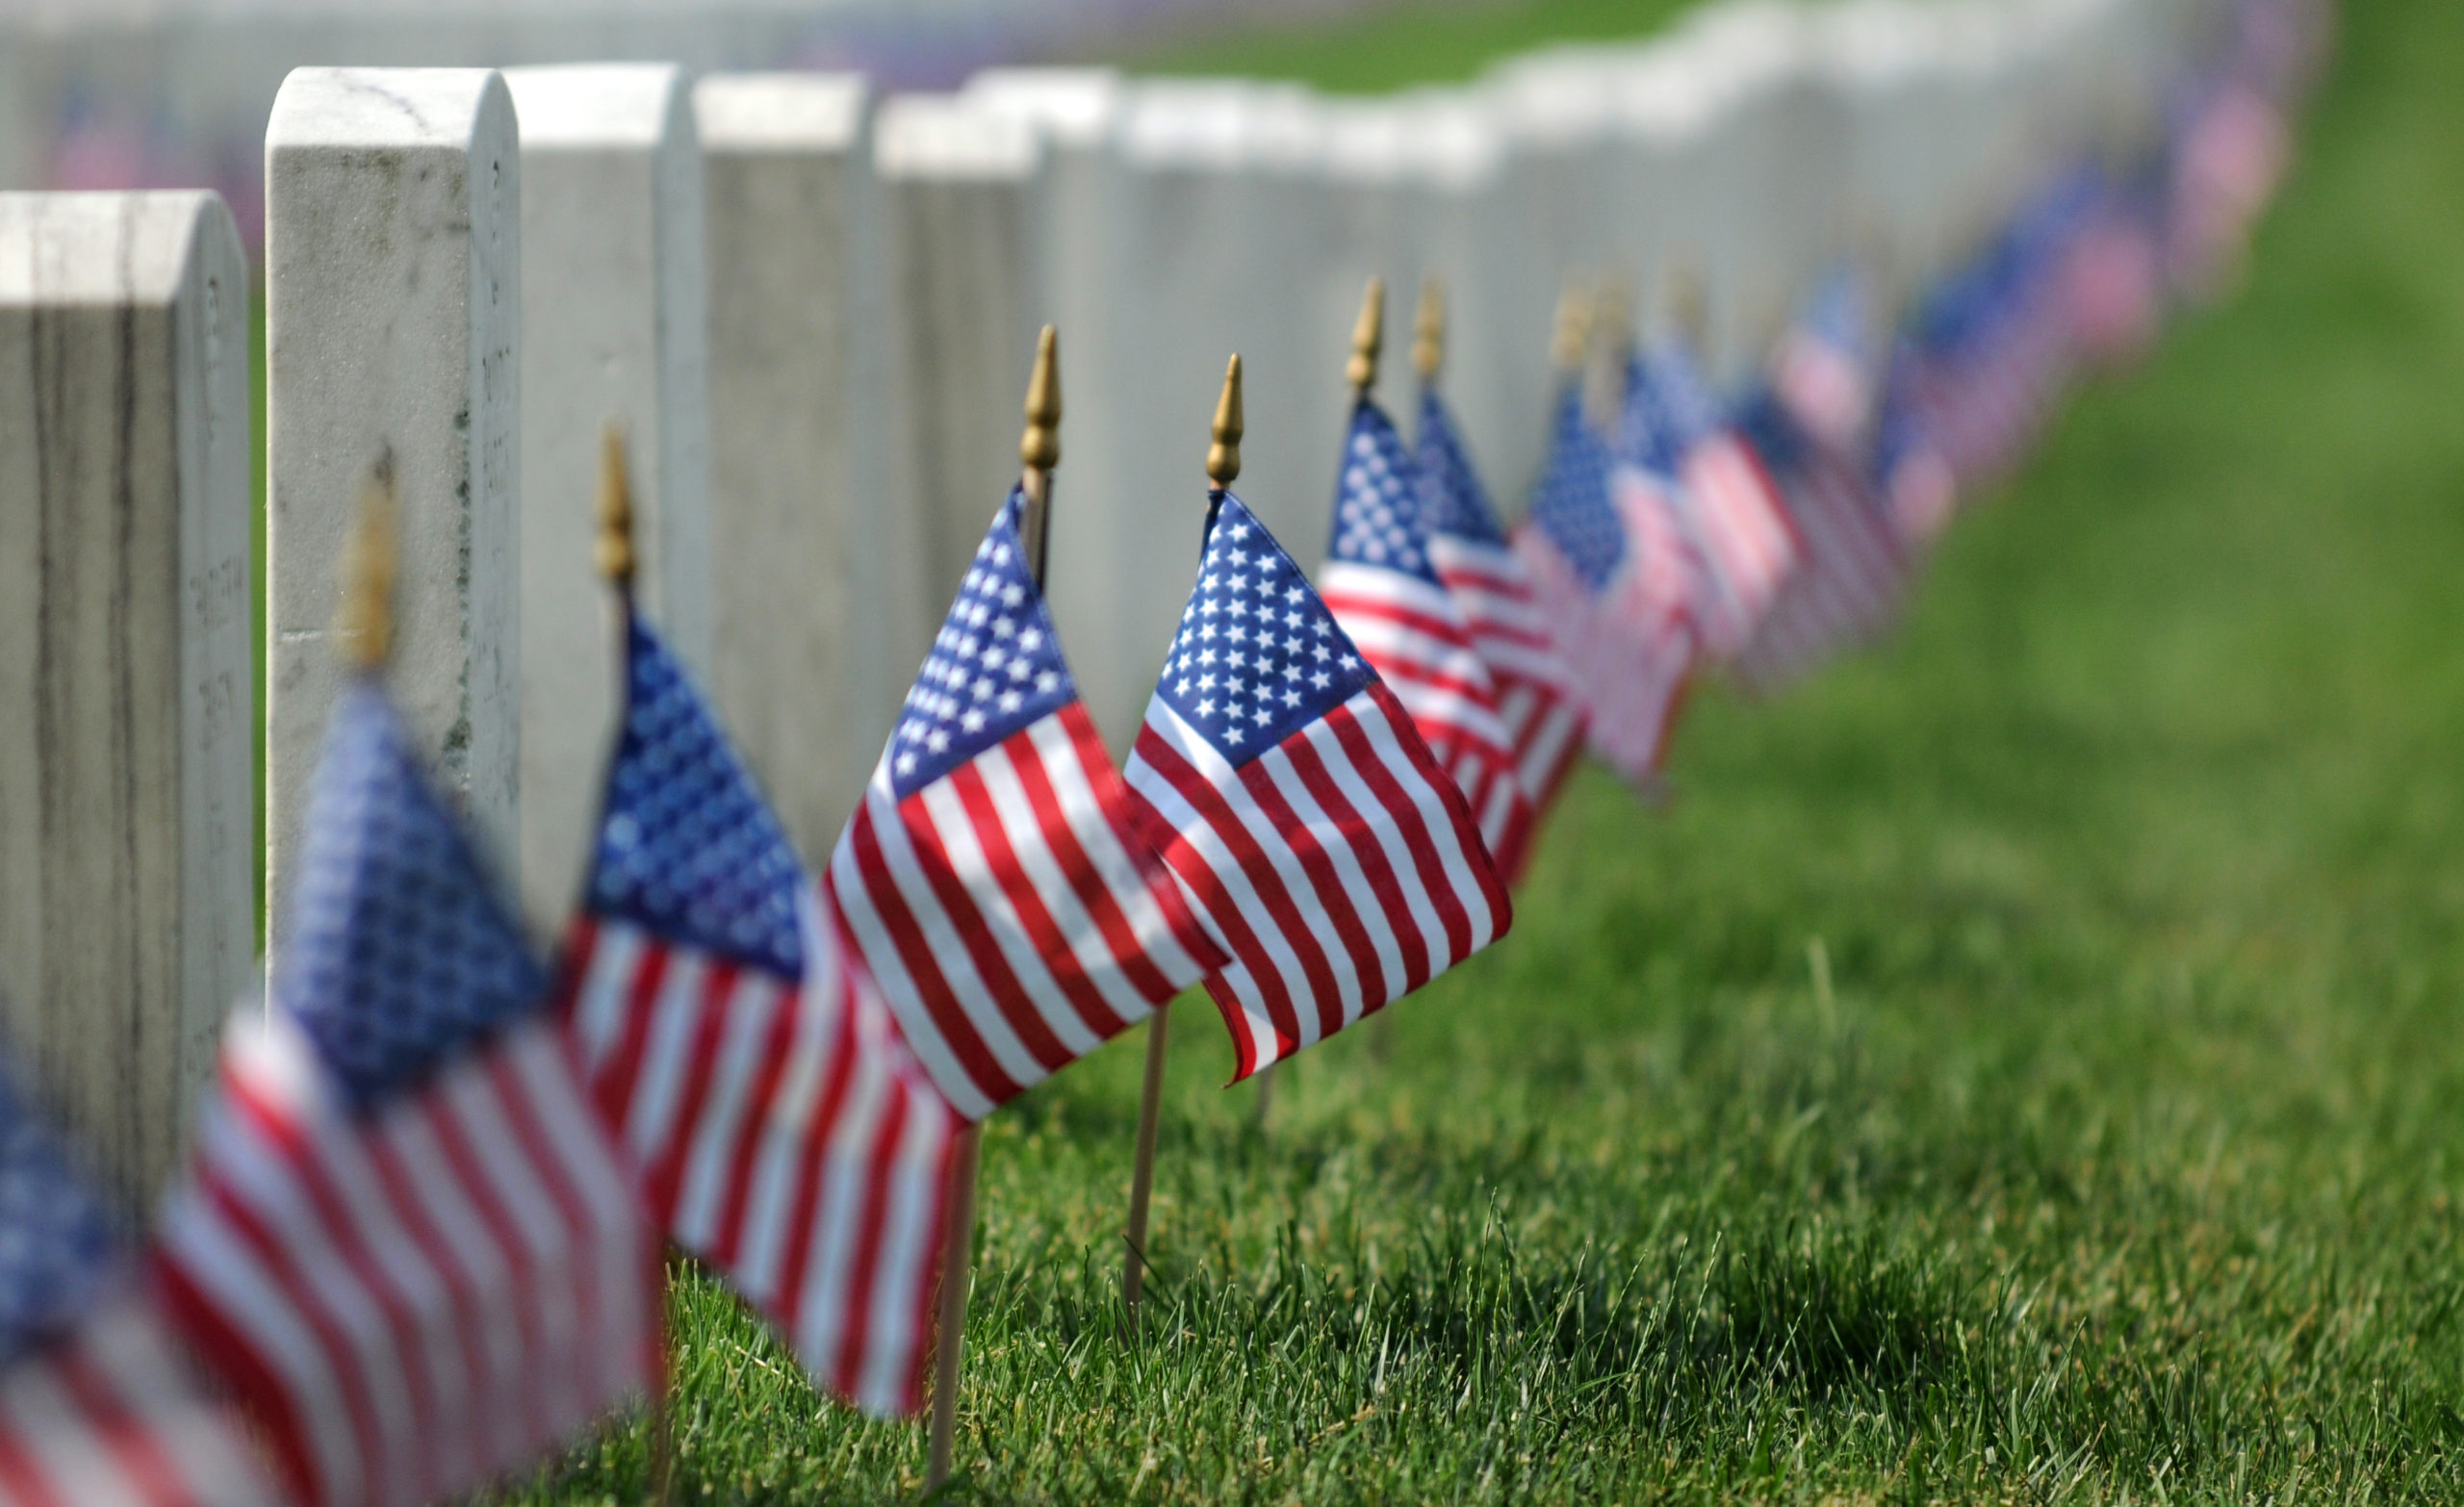 Don't Forget to Smile: Jocko Willink on Memorial Day 2017